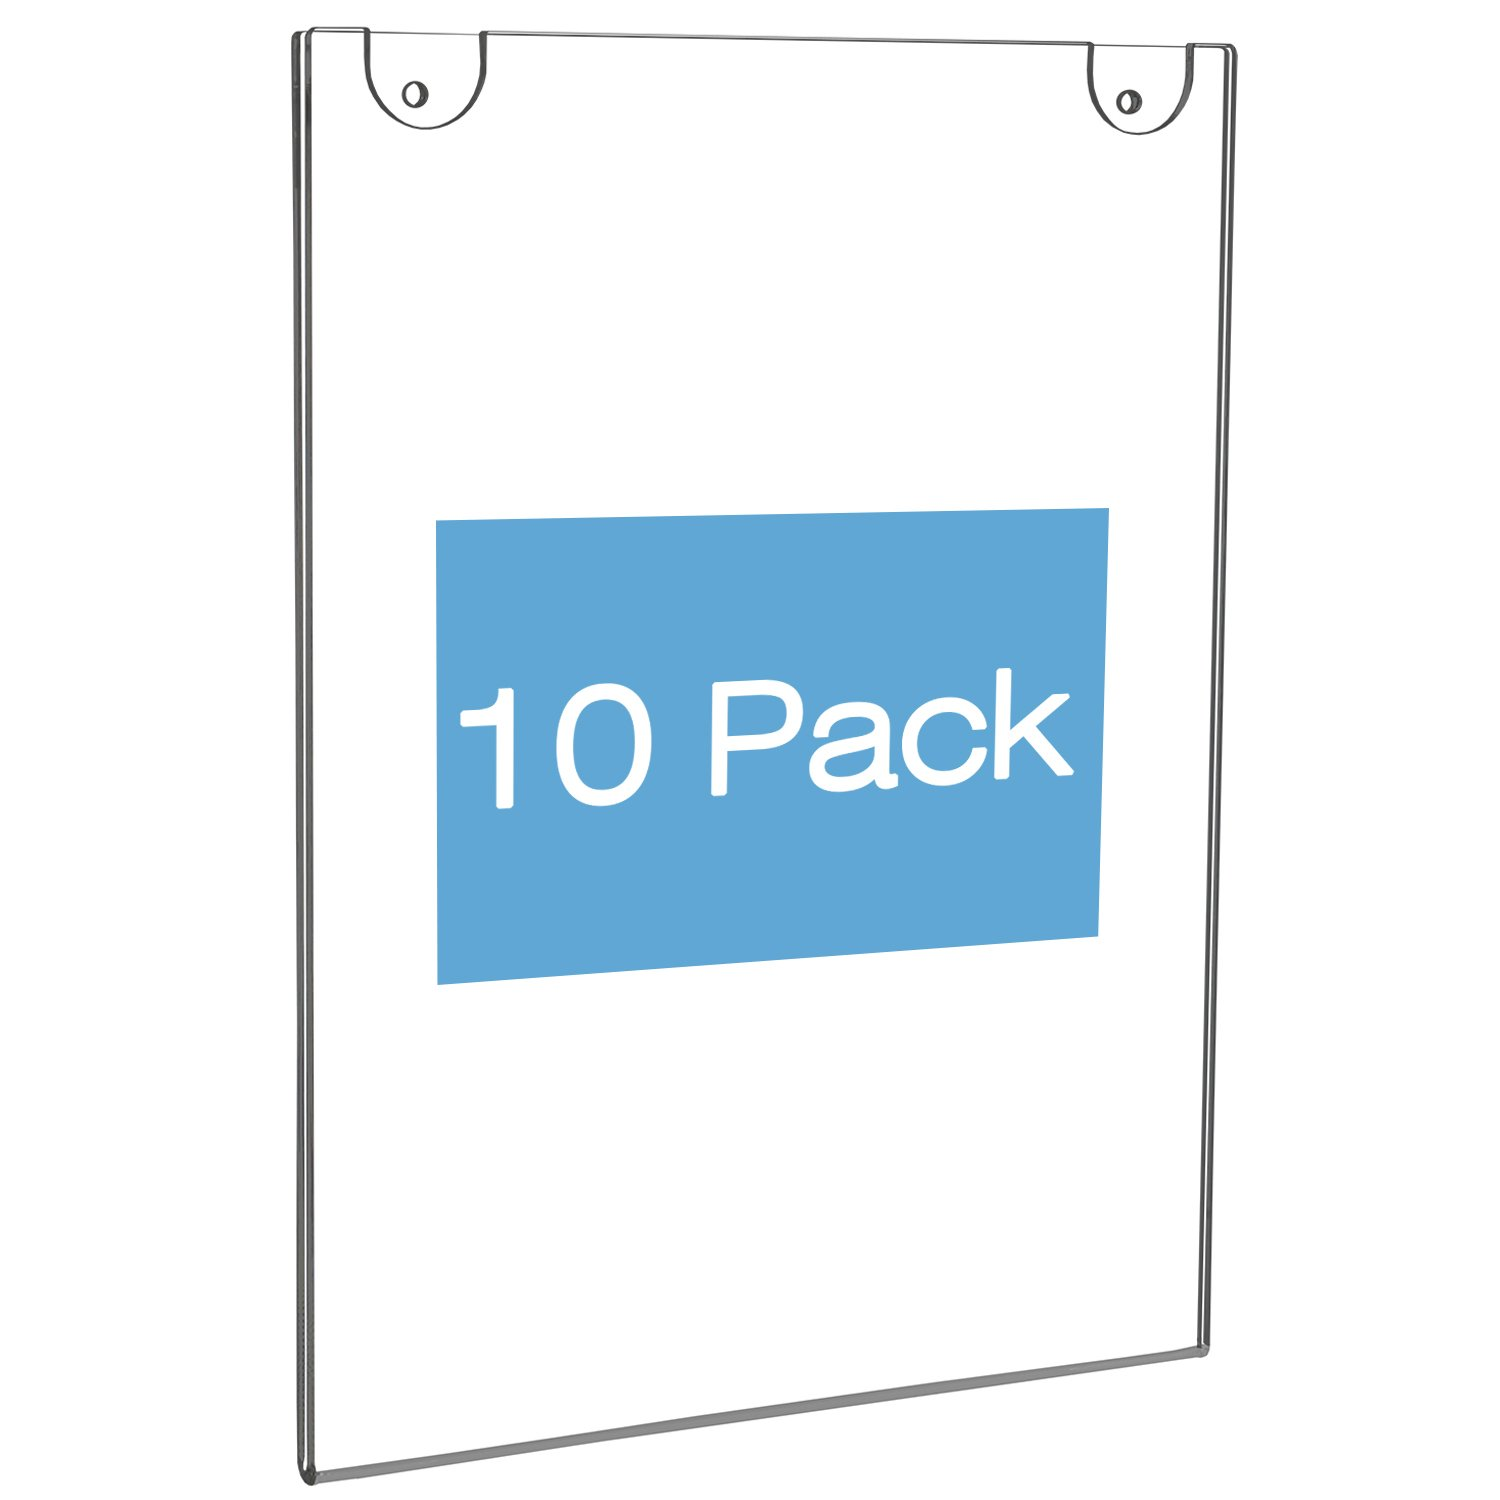 NIUBEE Acrylic Wall Mount Sign Holder 8.5 x 11 Inch- Clear Ad Frames for Papers- Vertical (10 Pack)